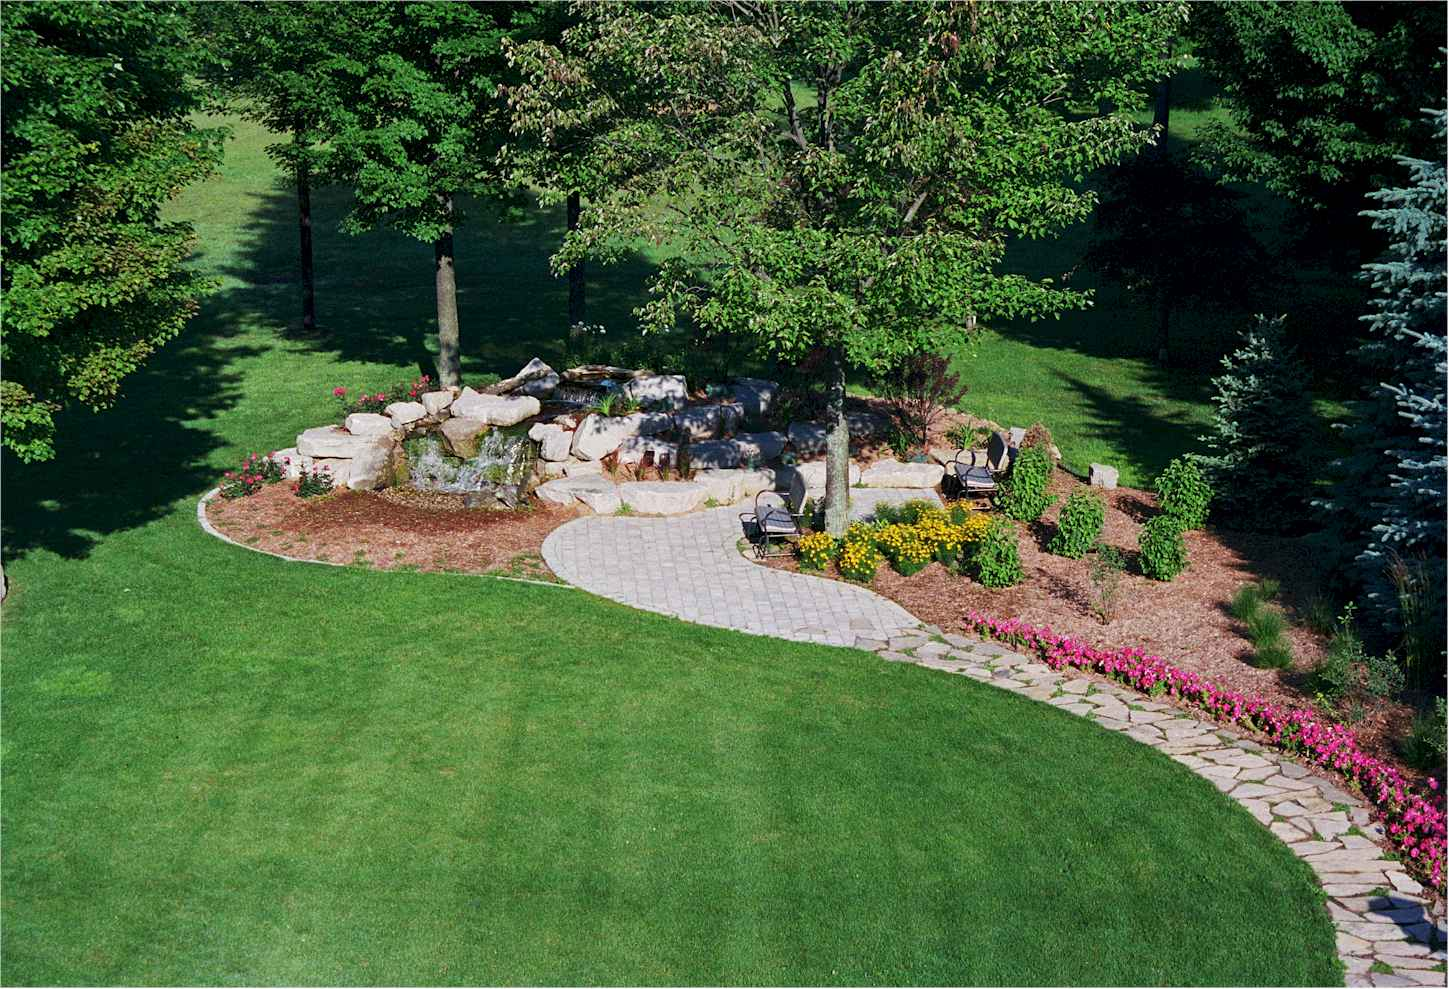 5 landscaping ideas to wow the neighbors for Beautiful landscape design